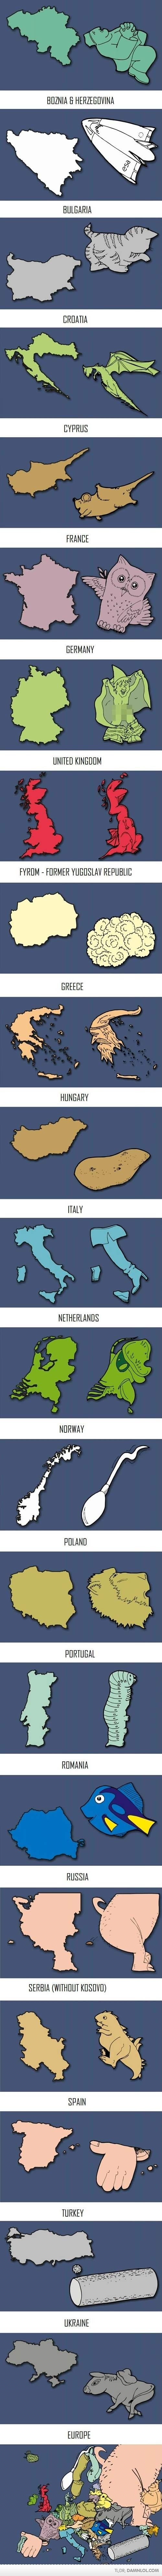 These combined with my previous European mnemonics pin are GREAT!!!  Europe In The Eyes Of An Artist